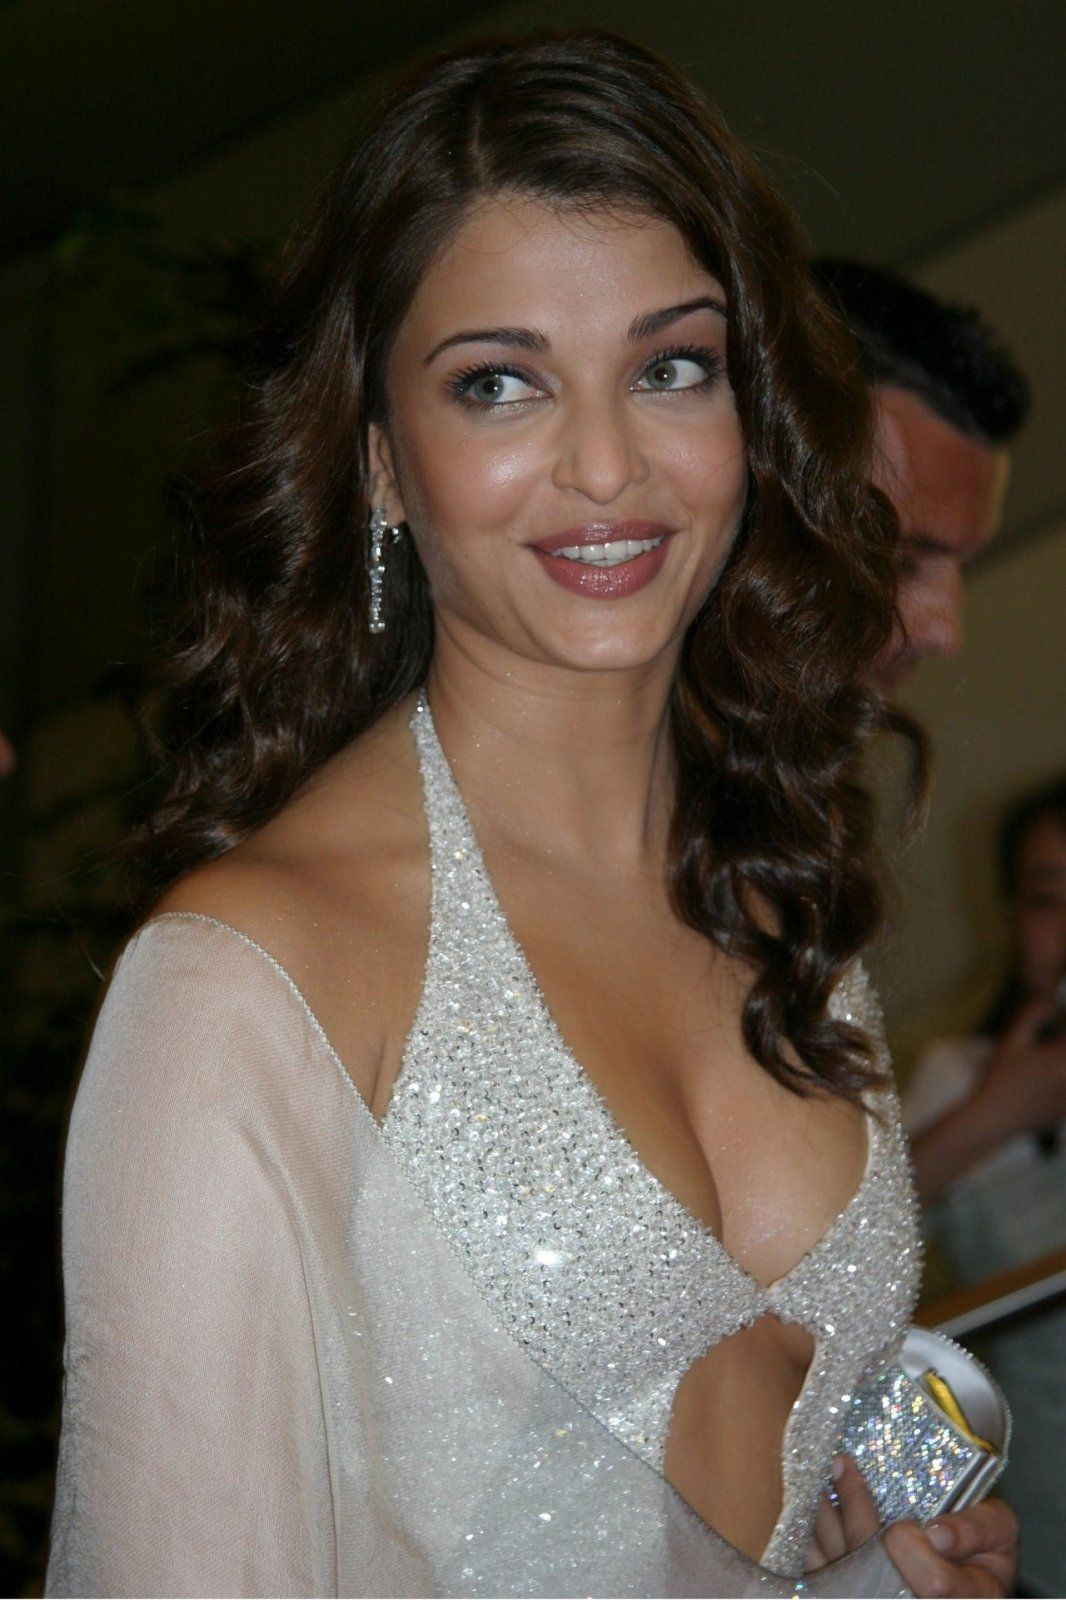 Aishwarya+Rai+without+clothes+and+without+makeup%2C+How+she+looks4.jpg